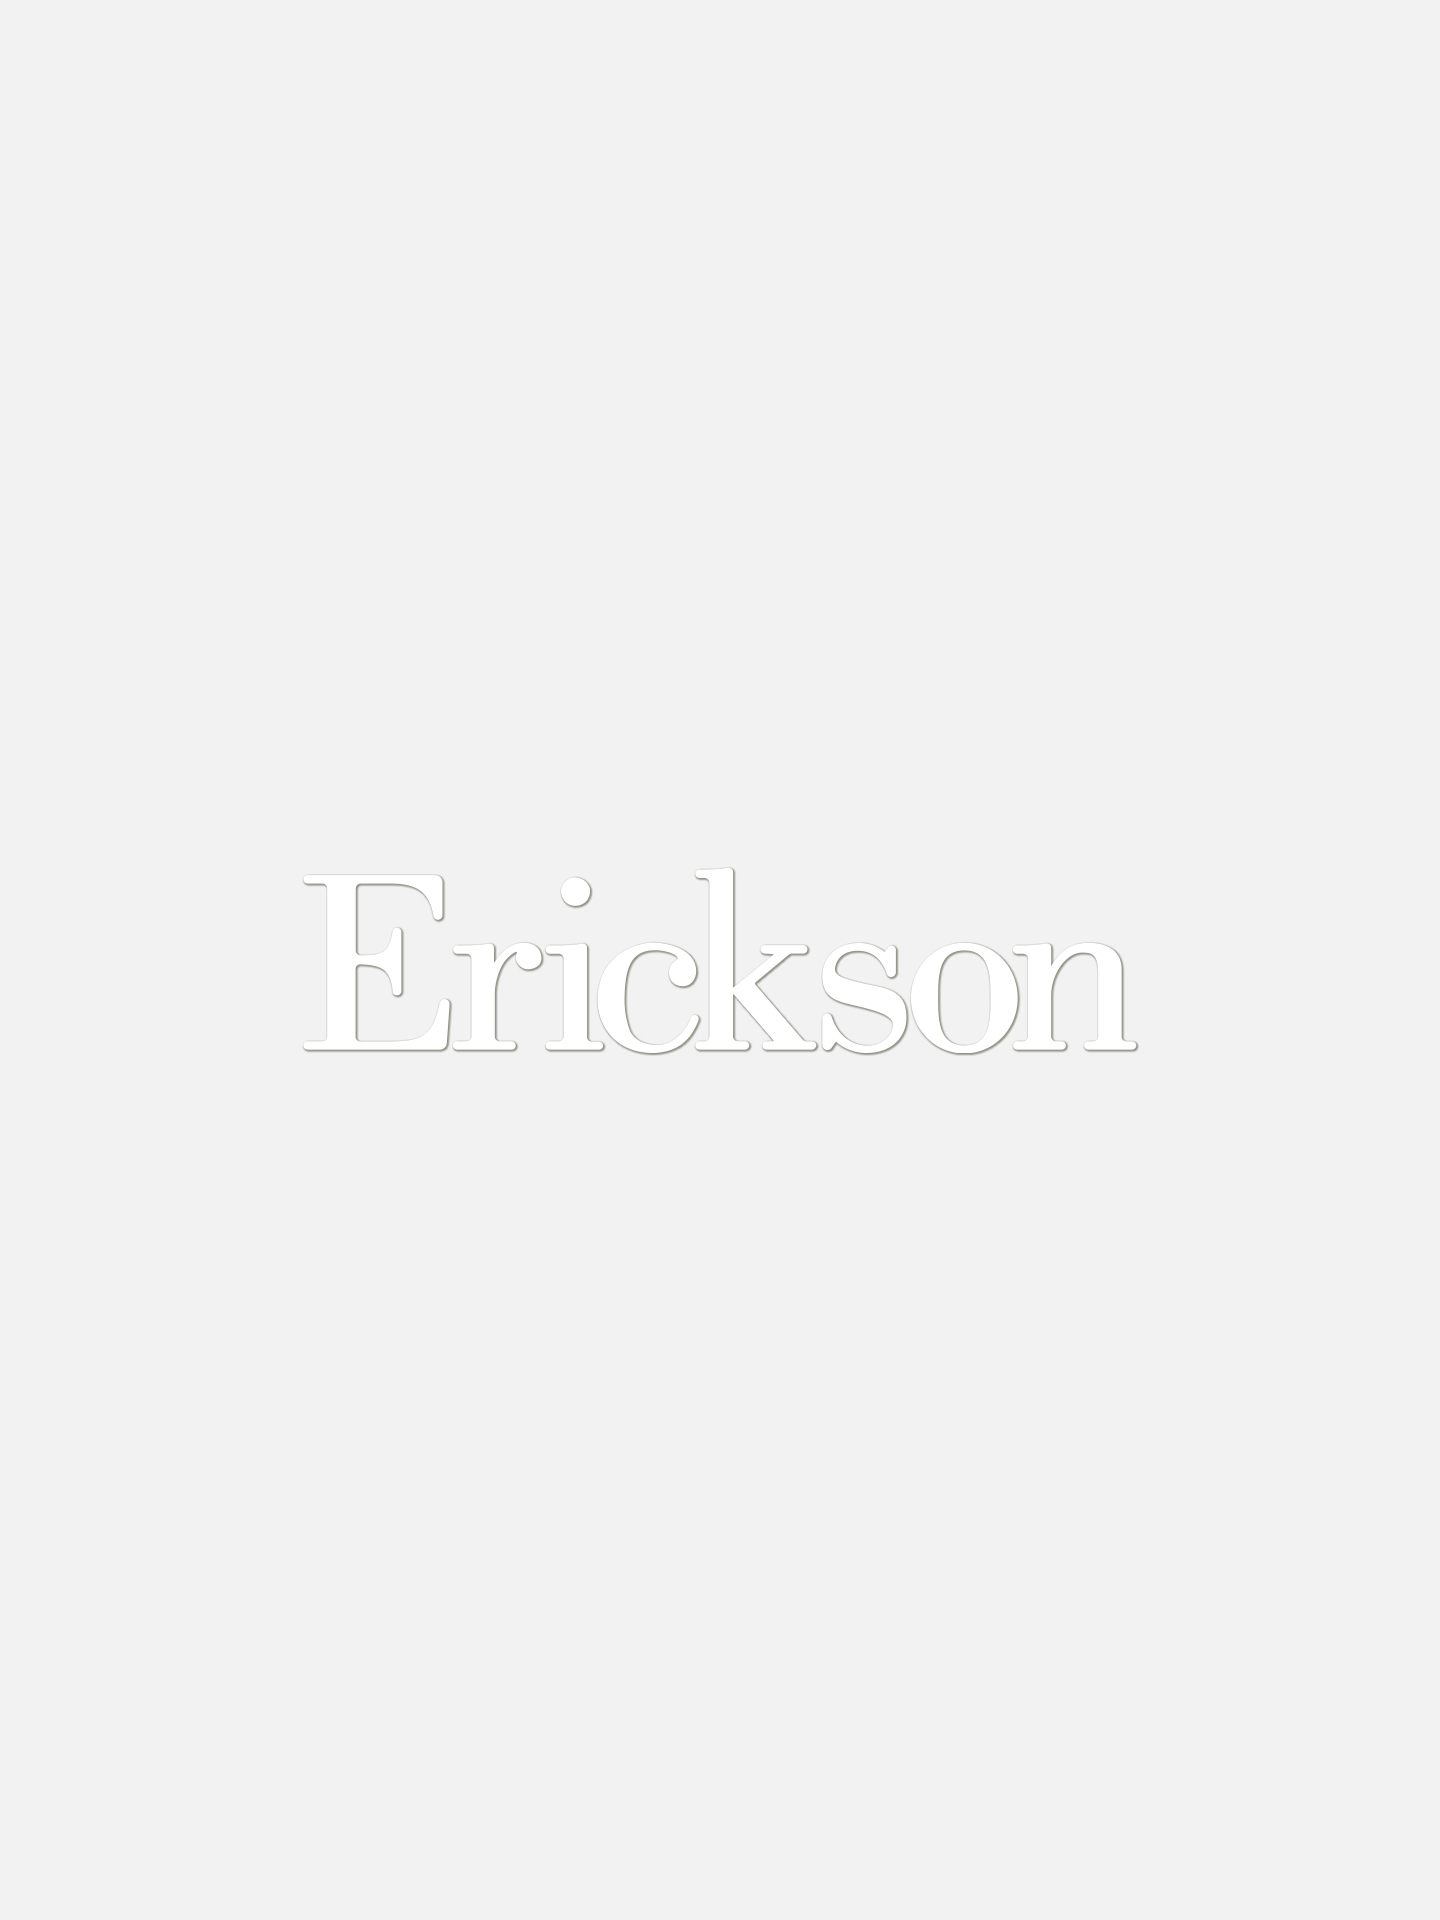 Travel Counseling - Erickson Eshop 2